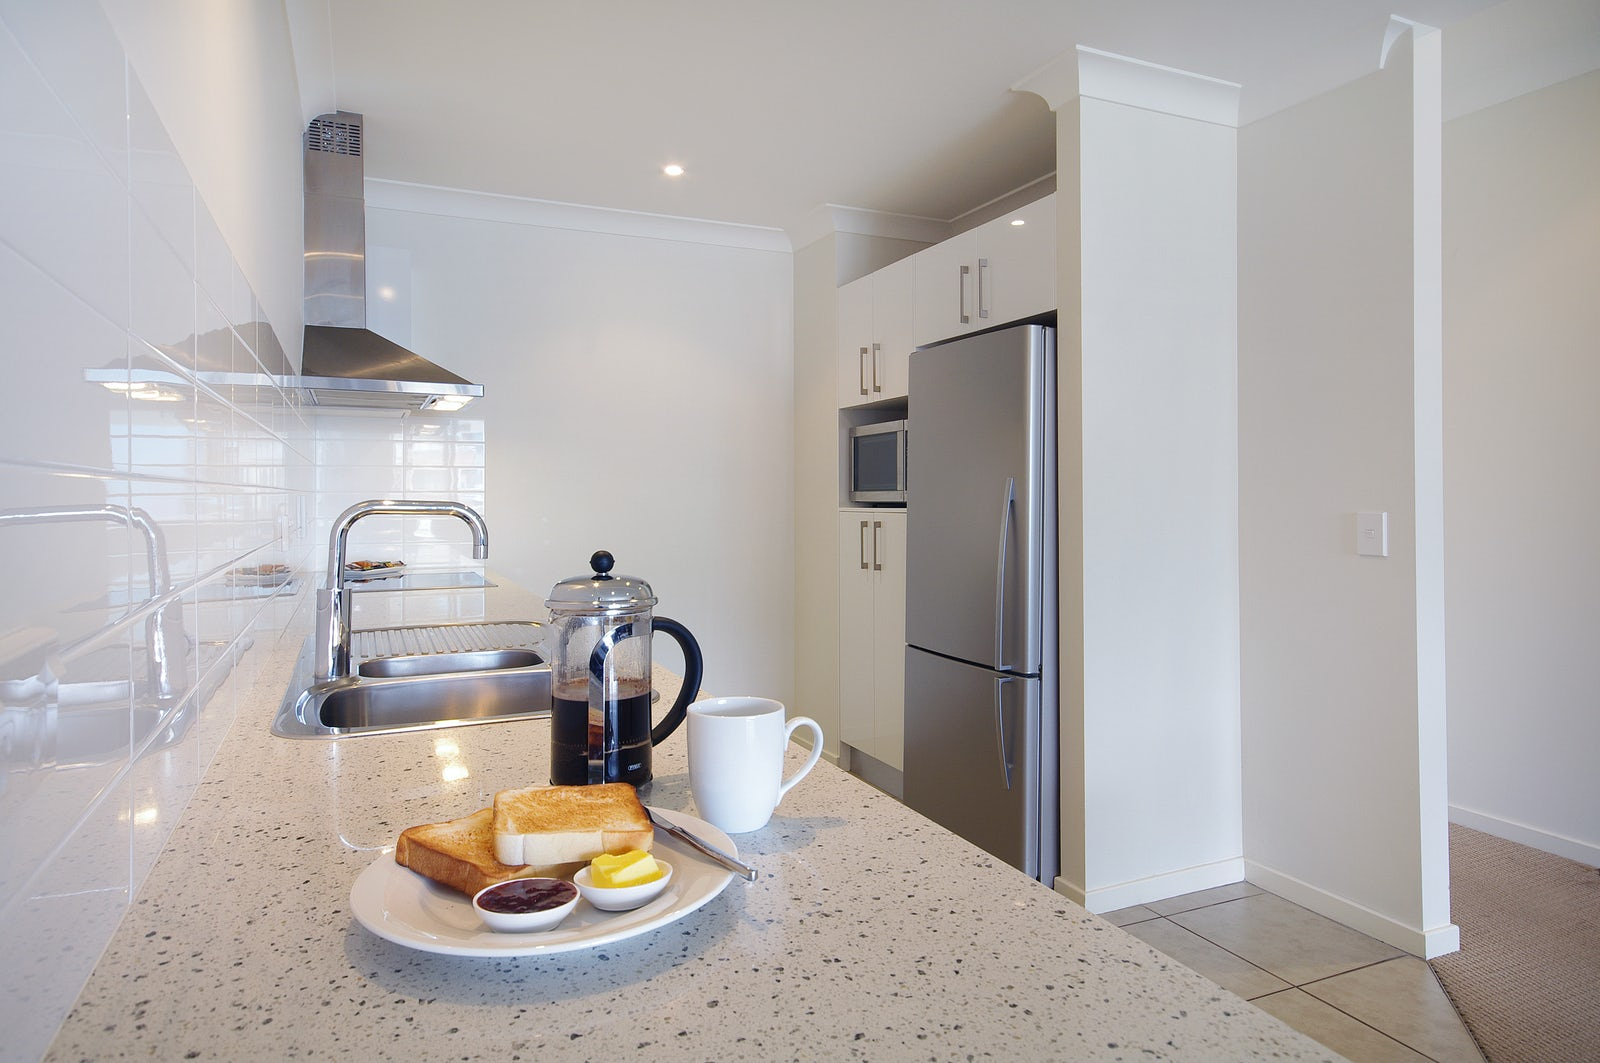 Port Douglas Apartments with a full kitchen including coffee making facilities